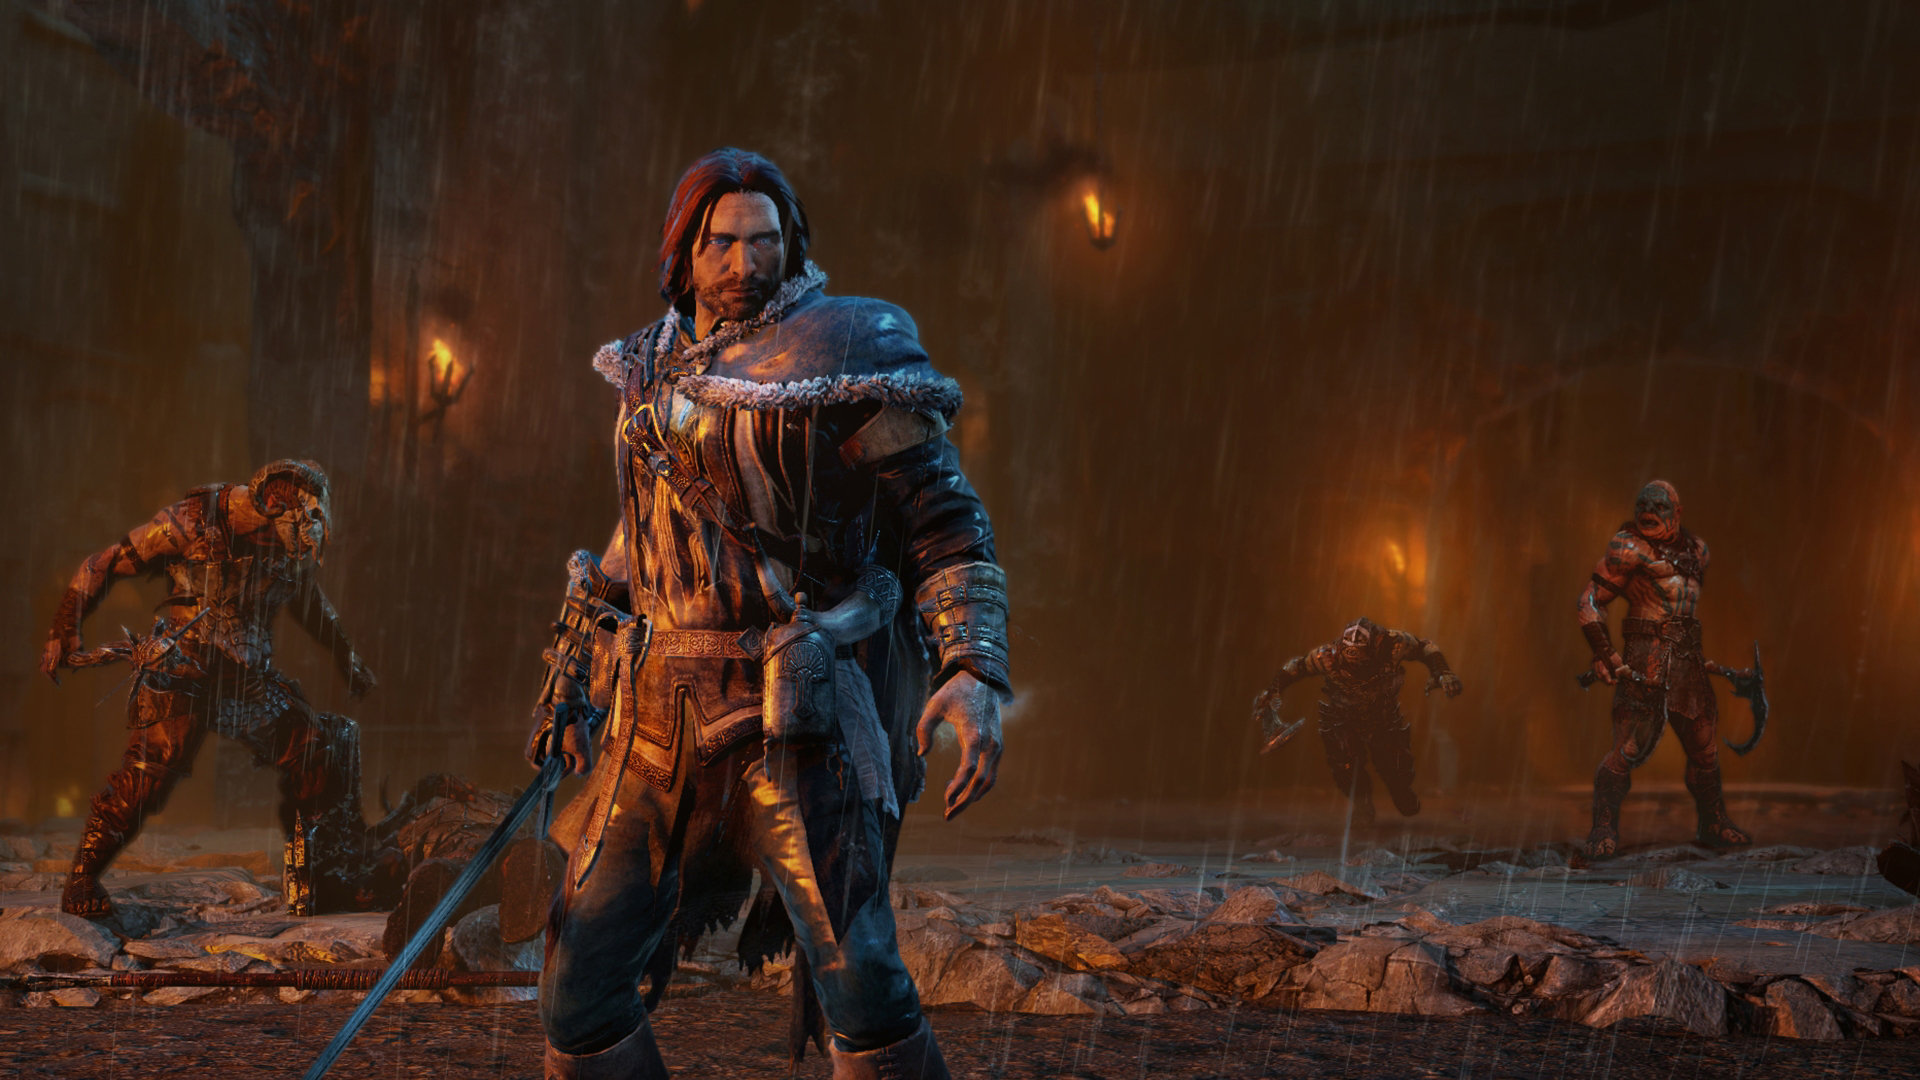 middle-earth-shadow-of-mordor-screen-01-